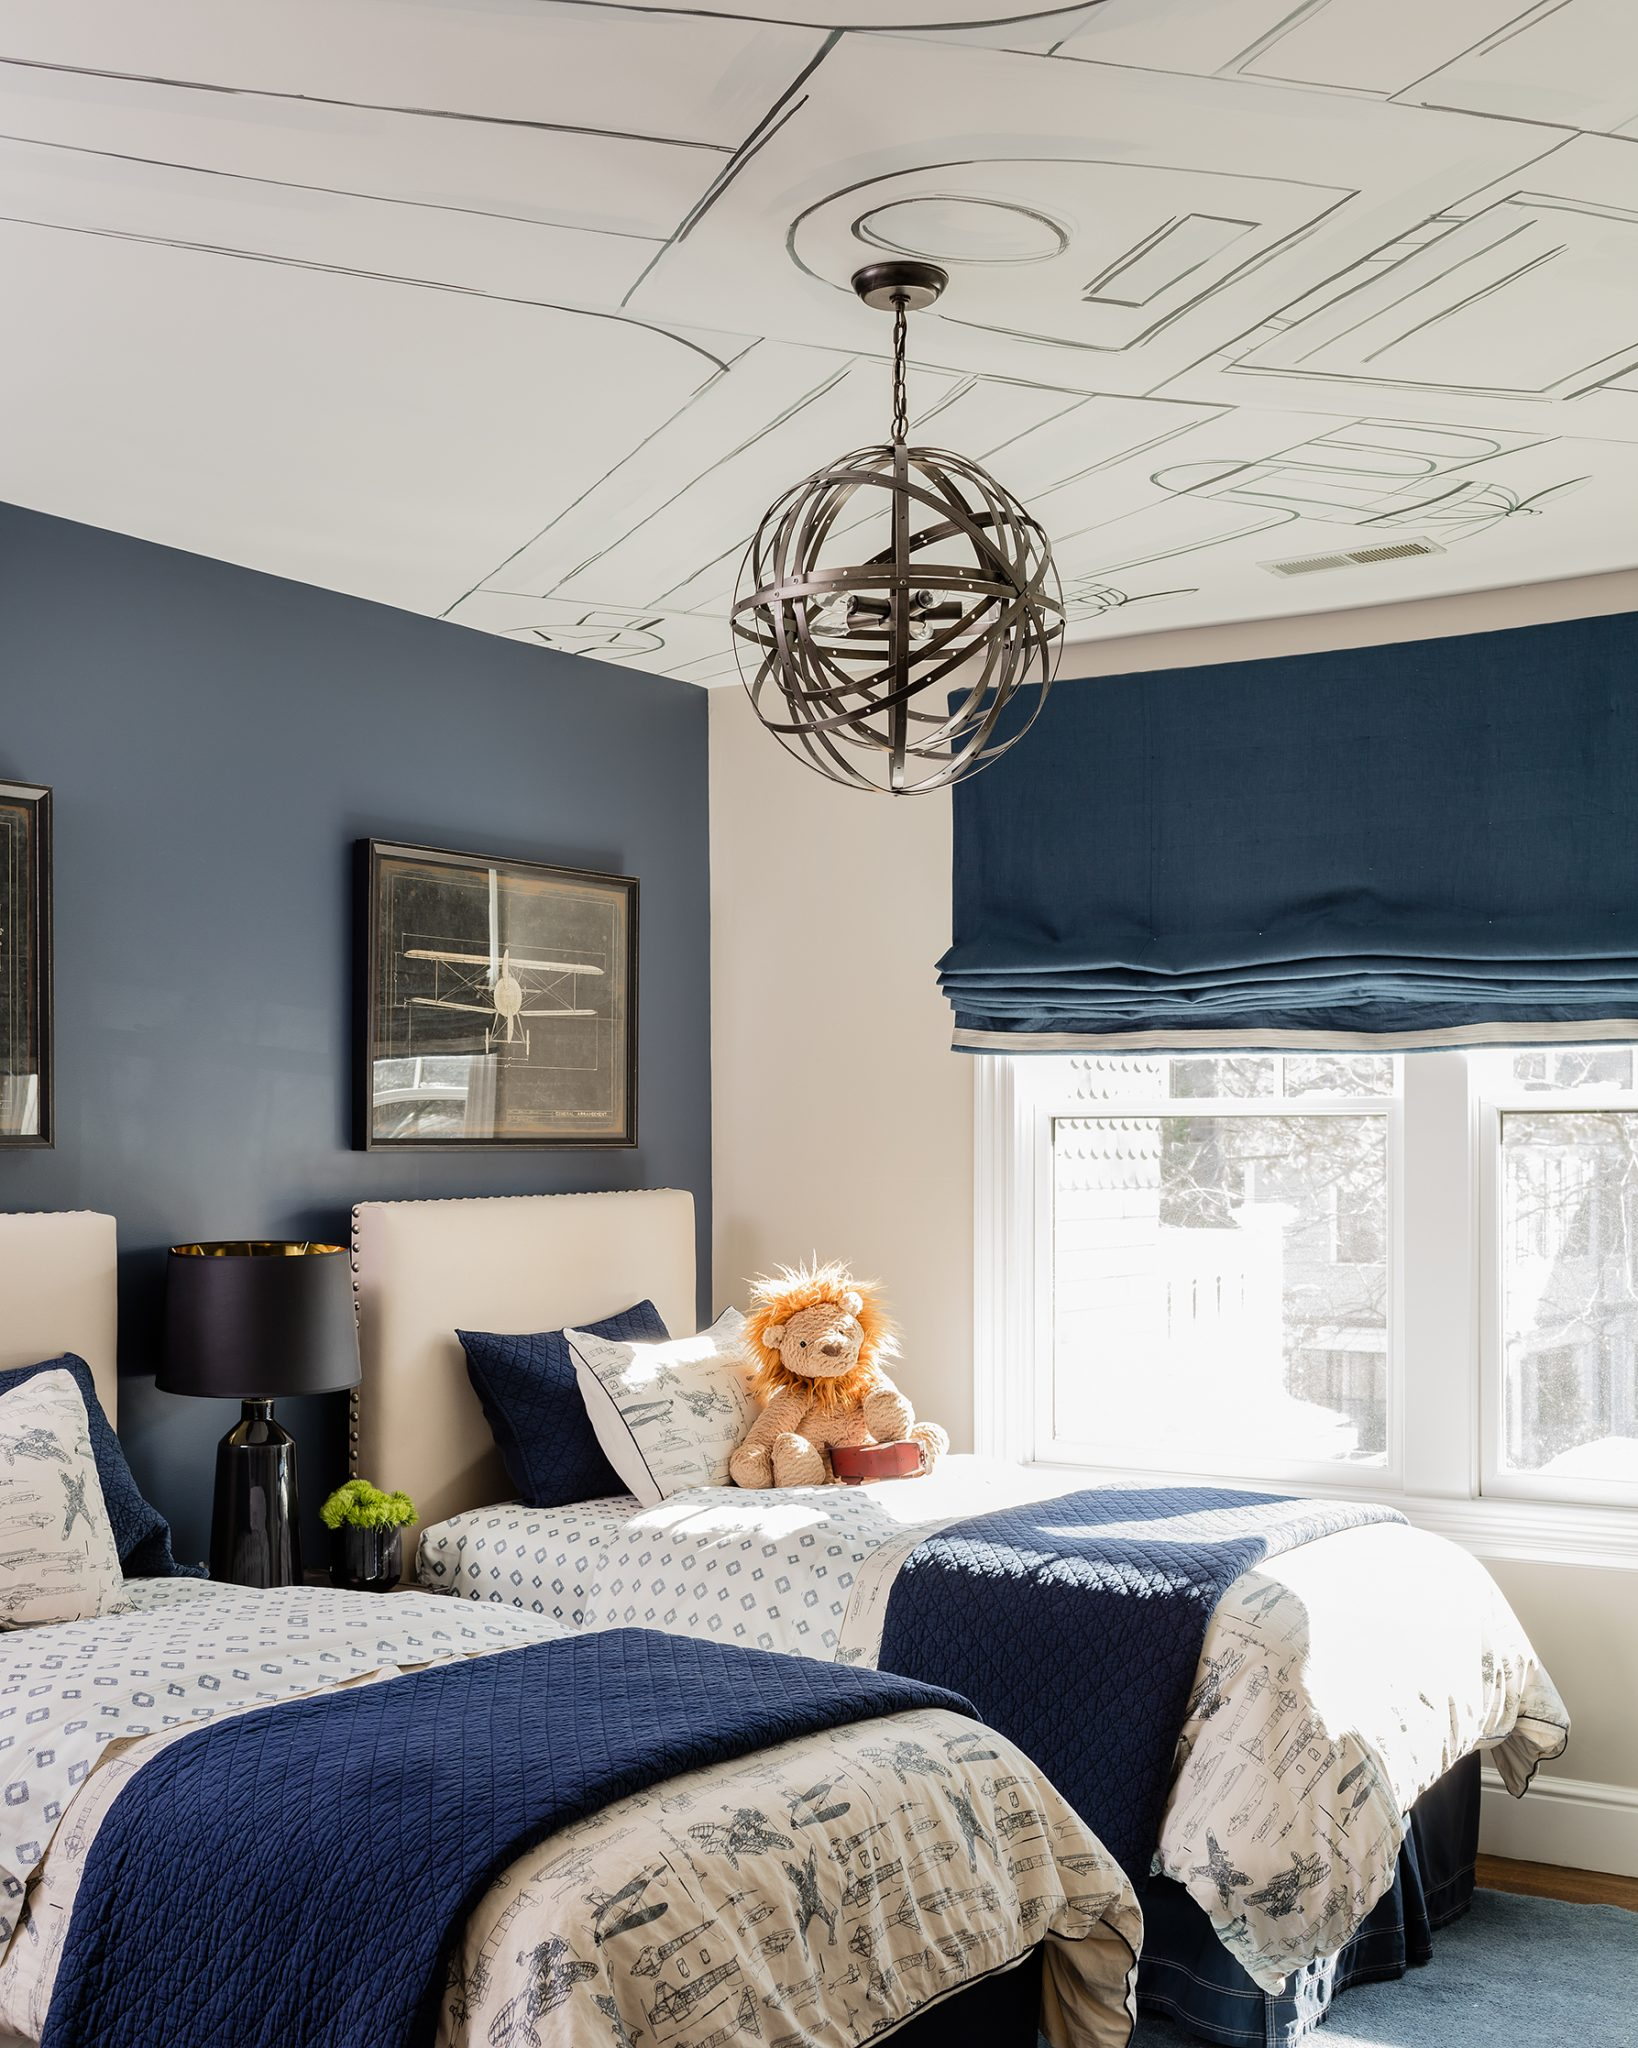 Newton Kids Bedroom with Twin Beds by Nicole Hogarty Designs